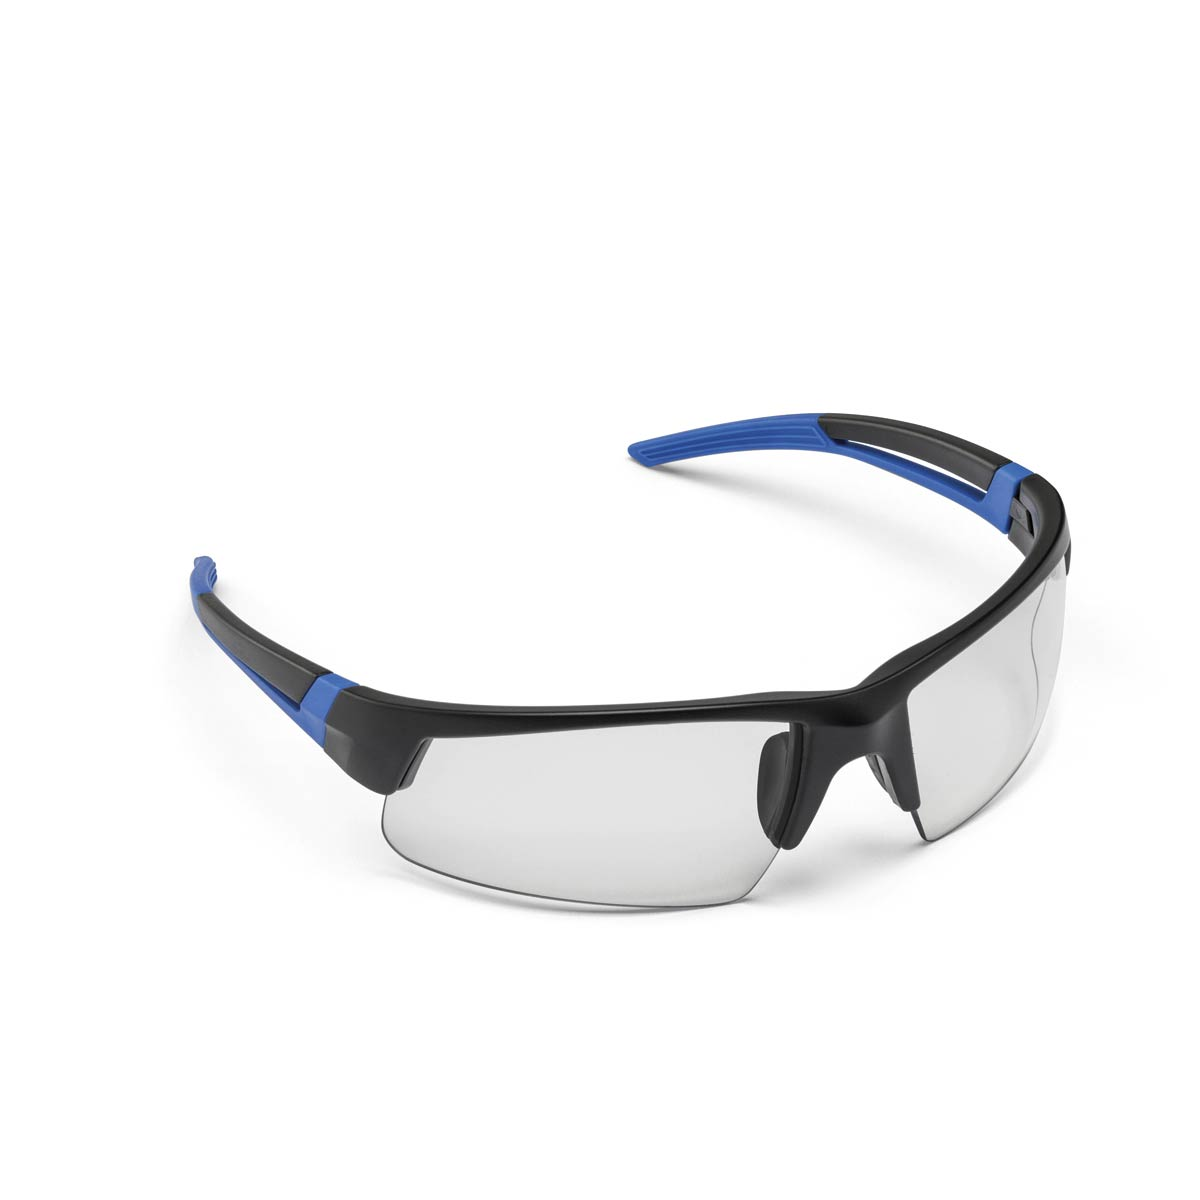 SAFETY GLASSES SPARK BLACK & BLUE CLEAR. Part: 272190. Pack: 1